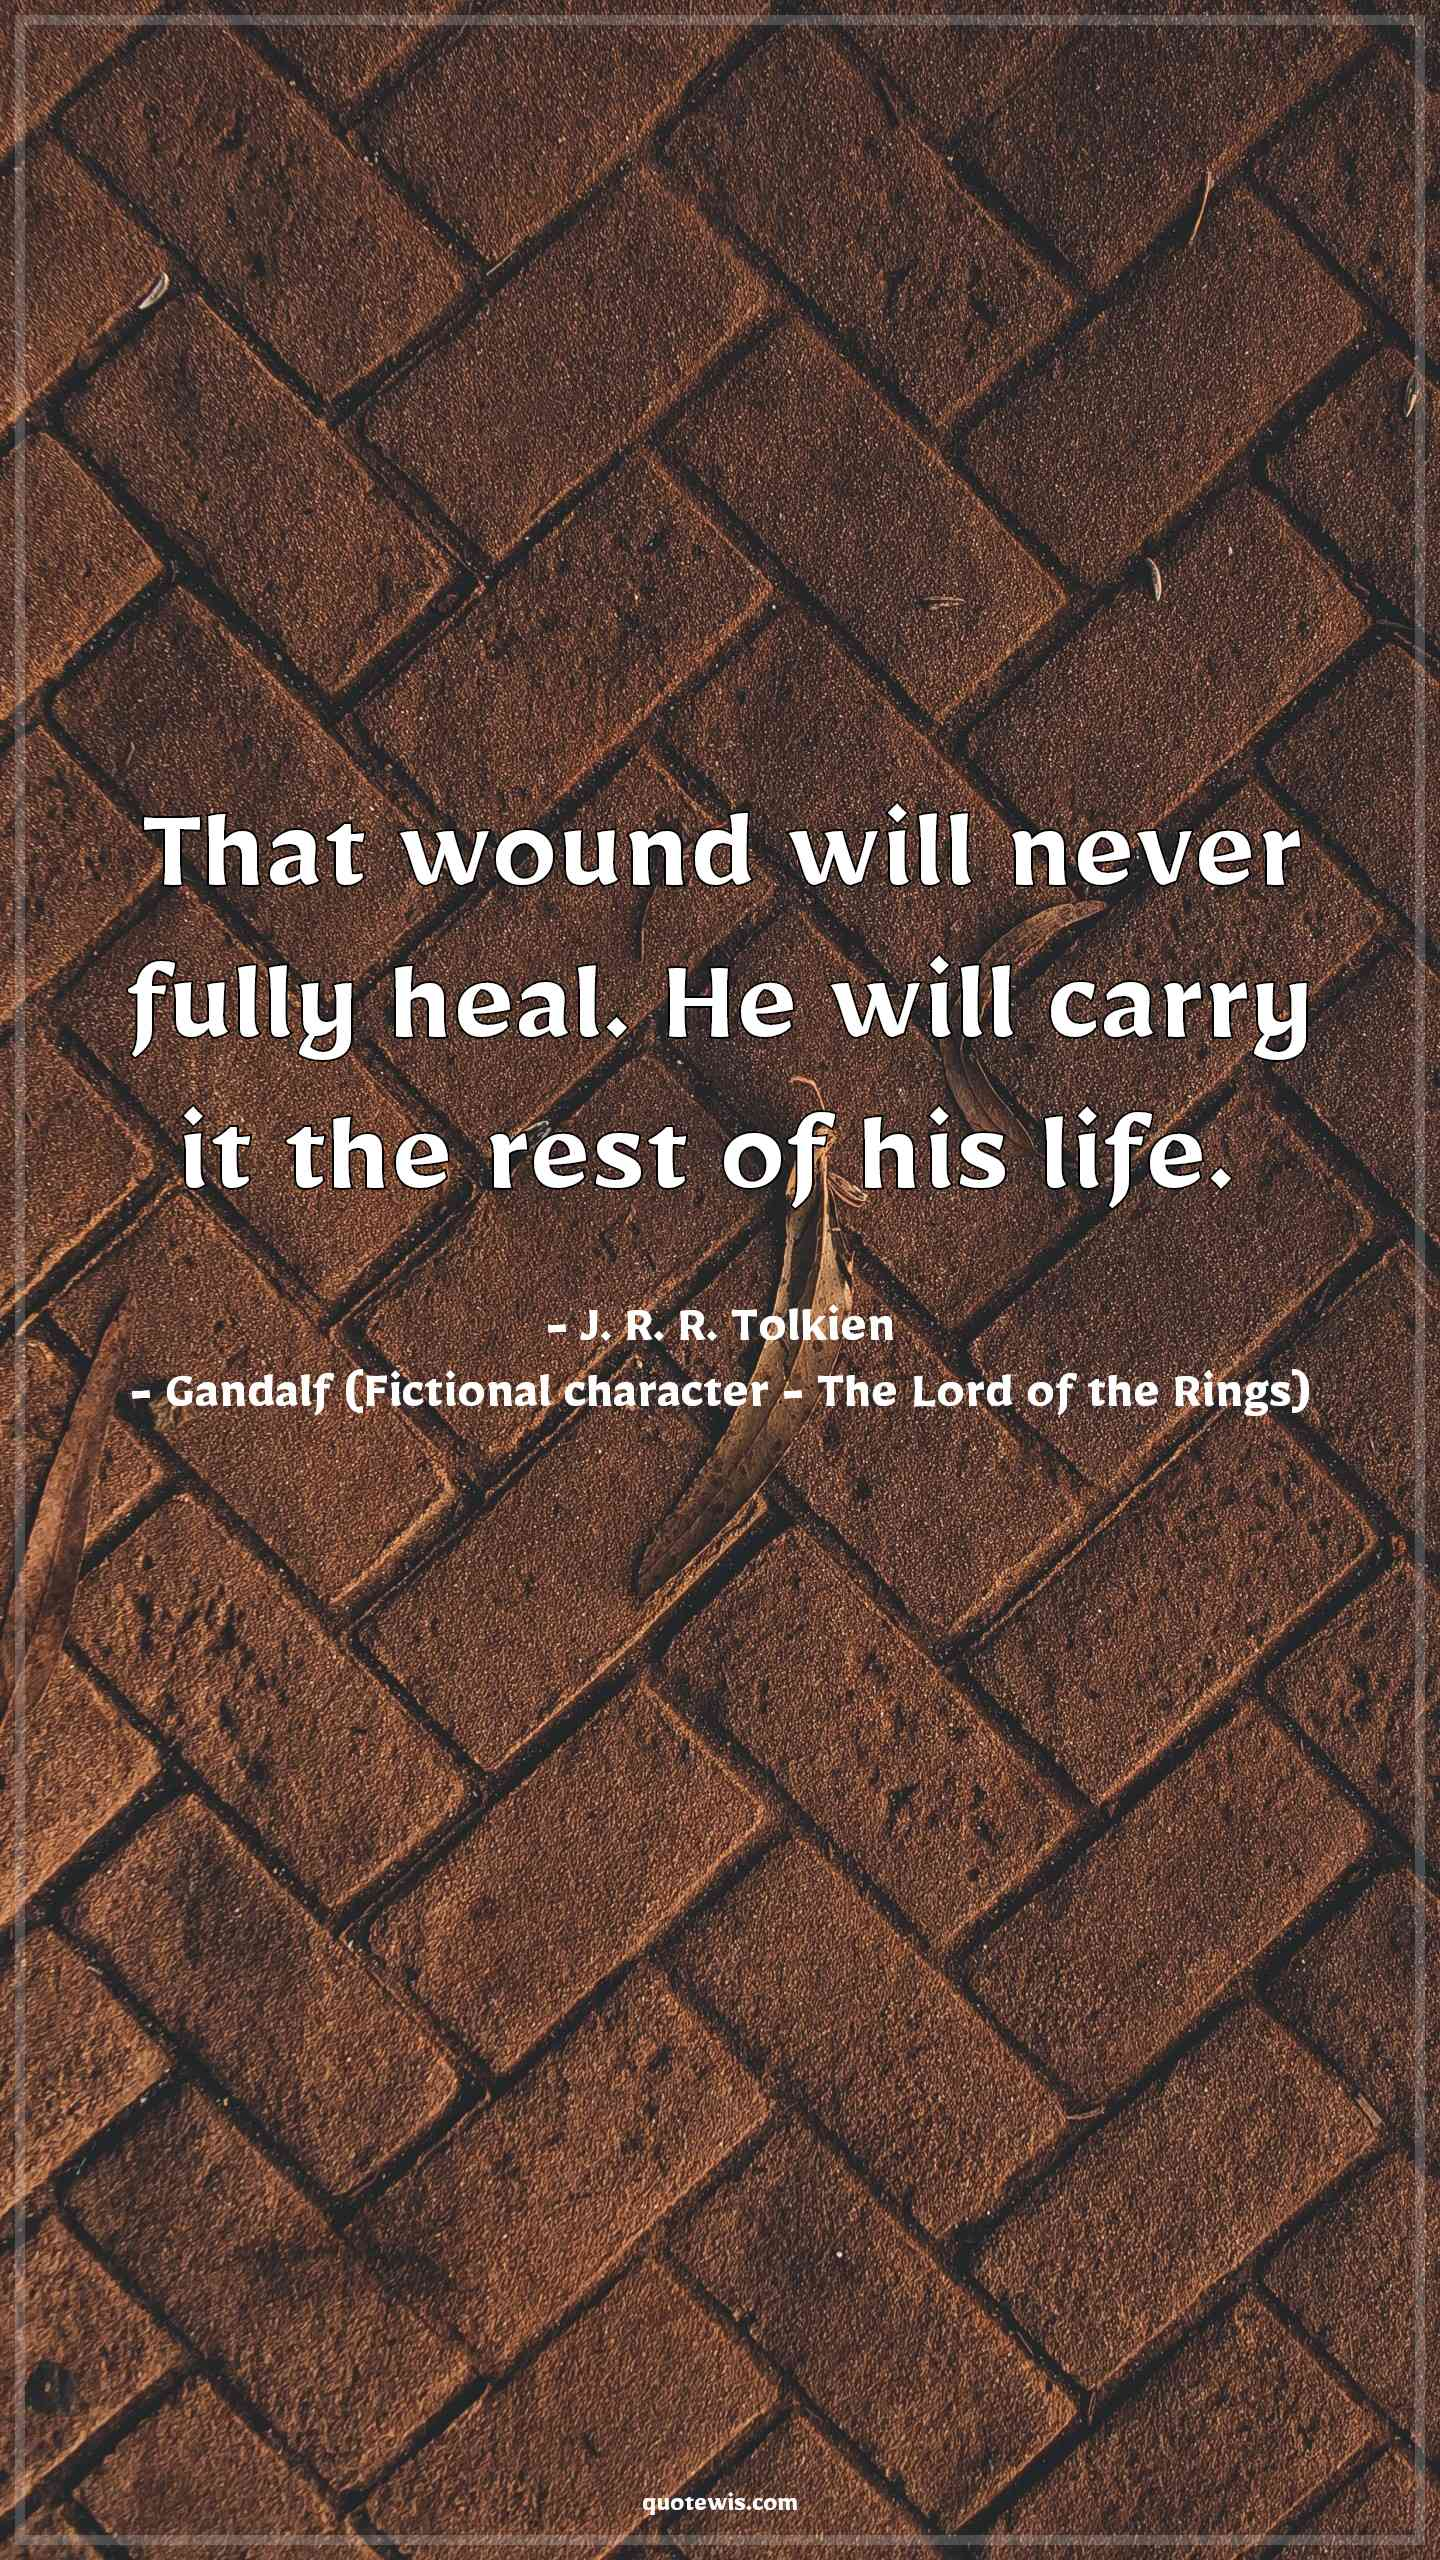 That wound will never fully heal. He will carry it the rest of his life.